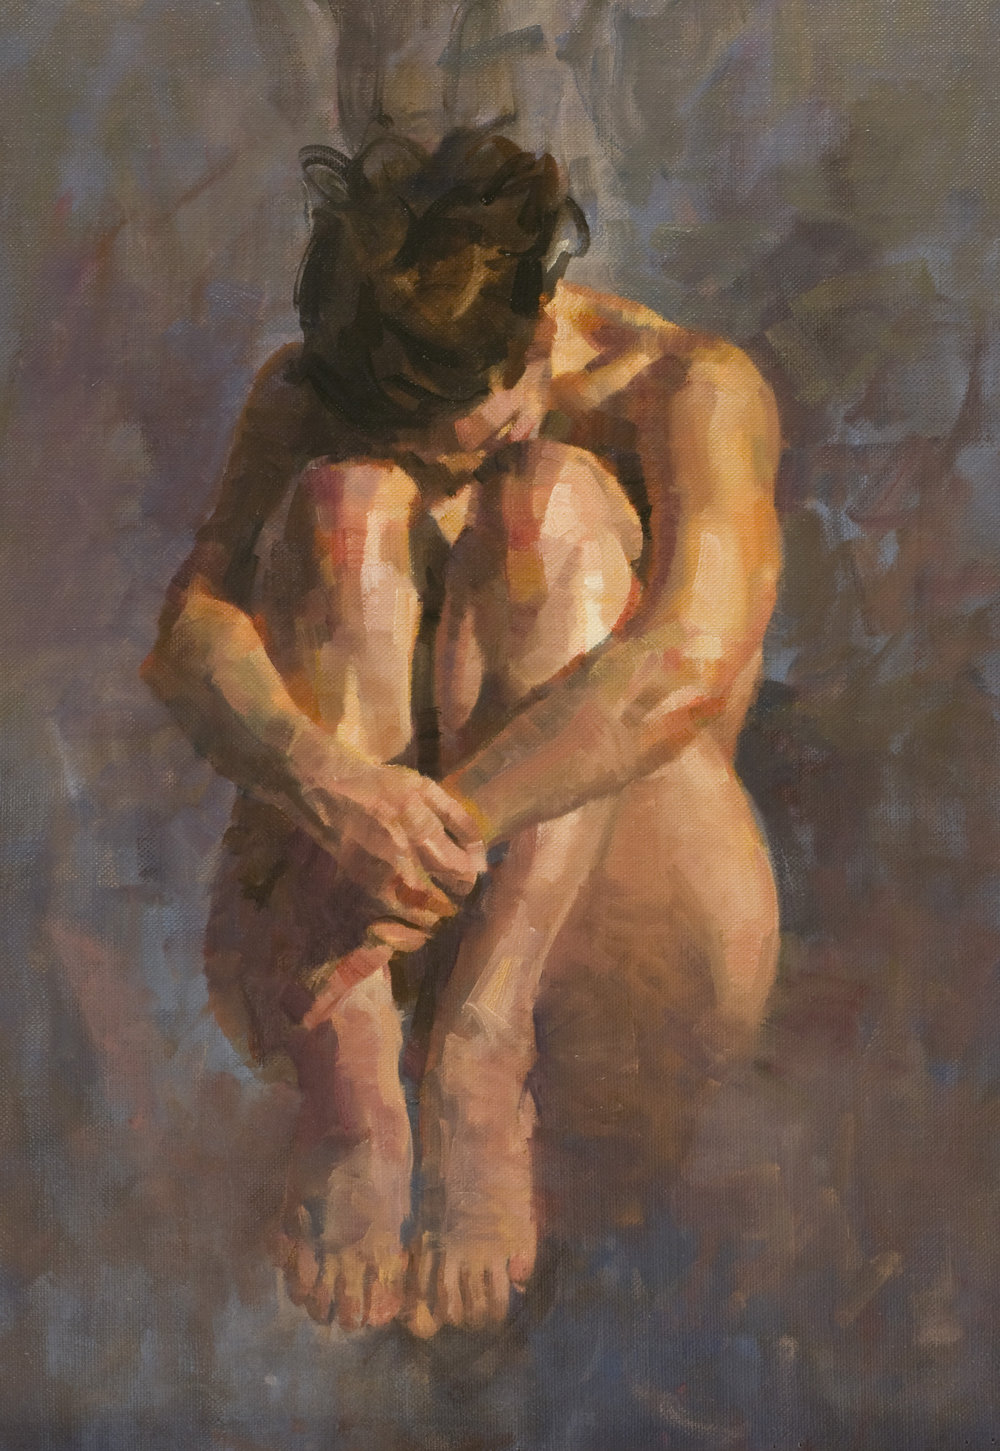 V. in Tuck Position   oil on linen 22 x 15